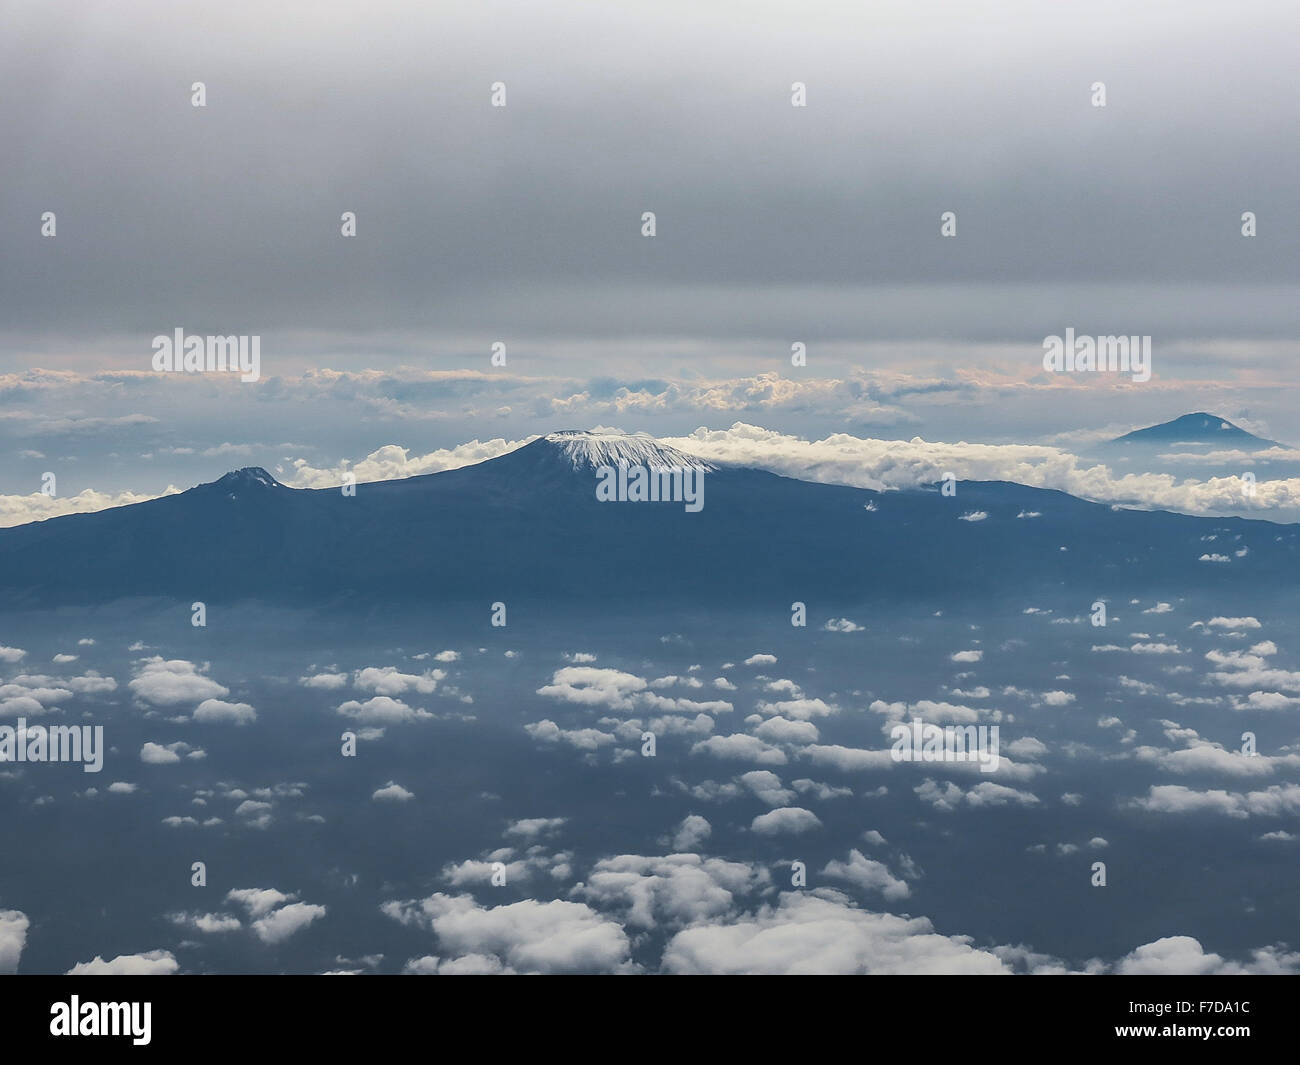 Mount Kilimanjaro seen from a plane - Stock Image